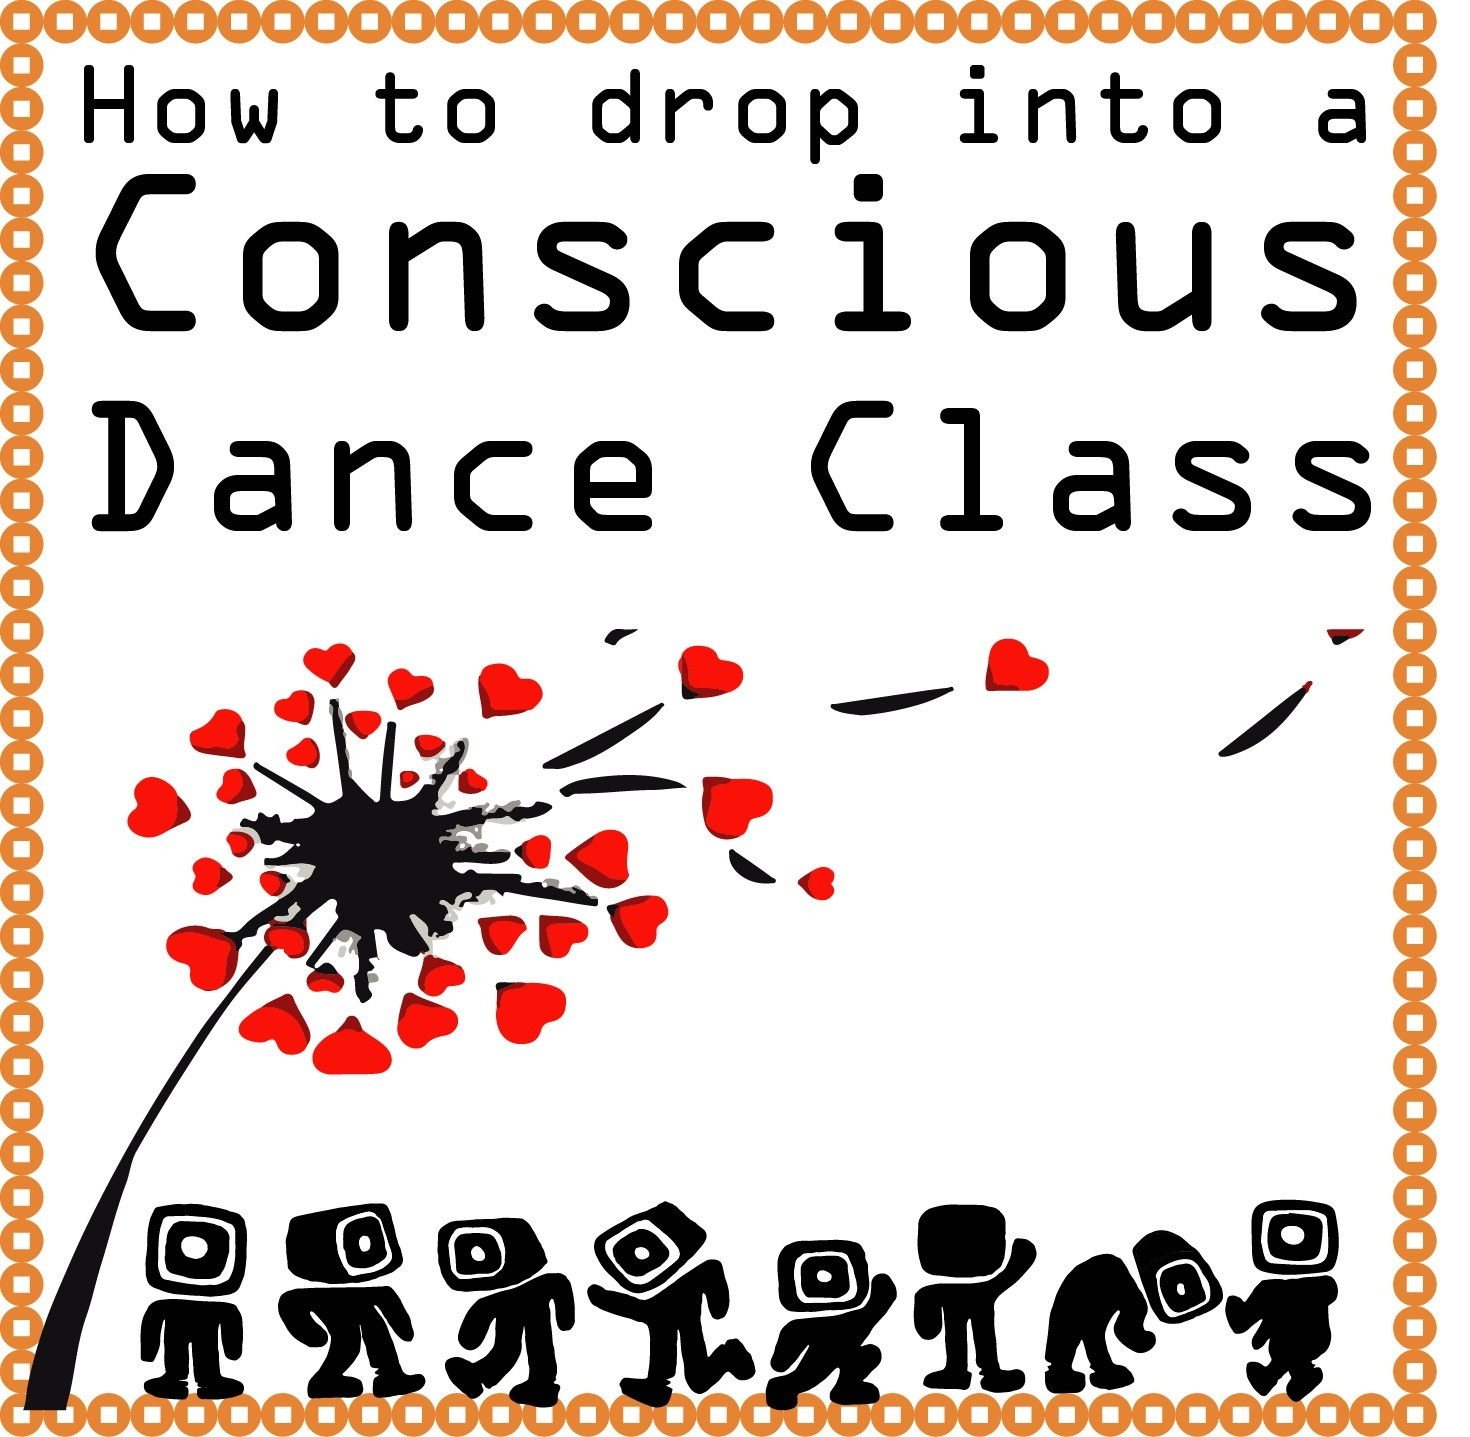 How to drop into a conscious dance class